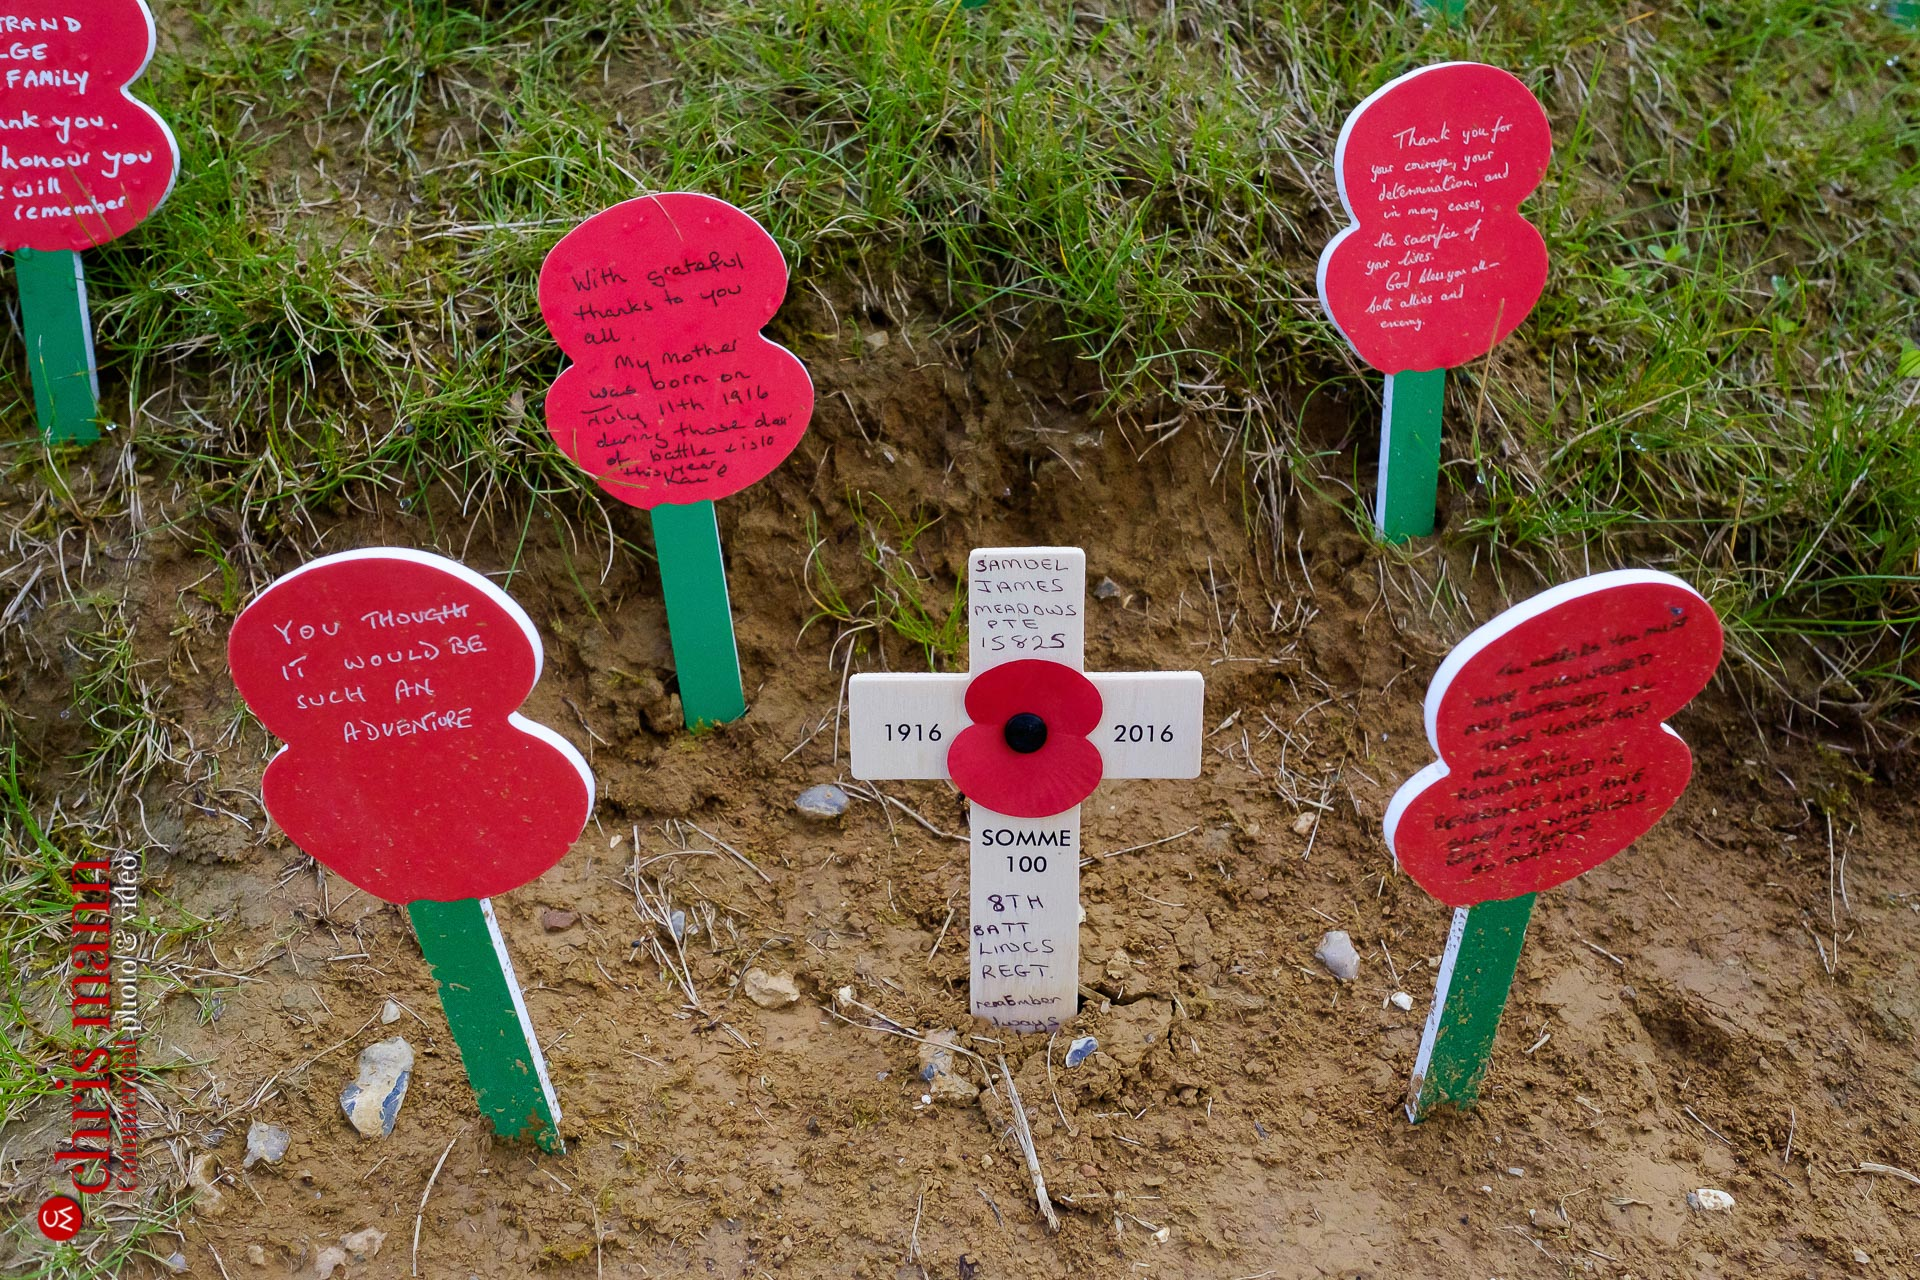 remembrance poppies at Thiepval Battle of the Somme 100th Anniversary